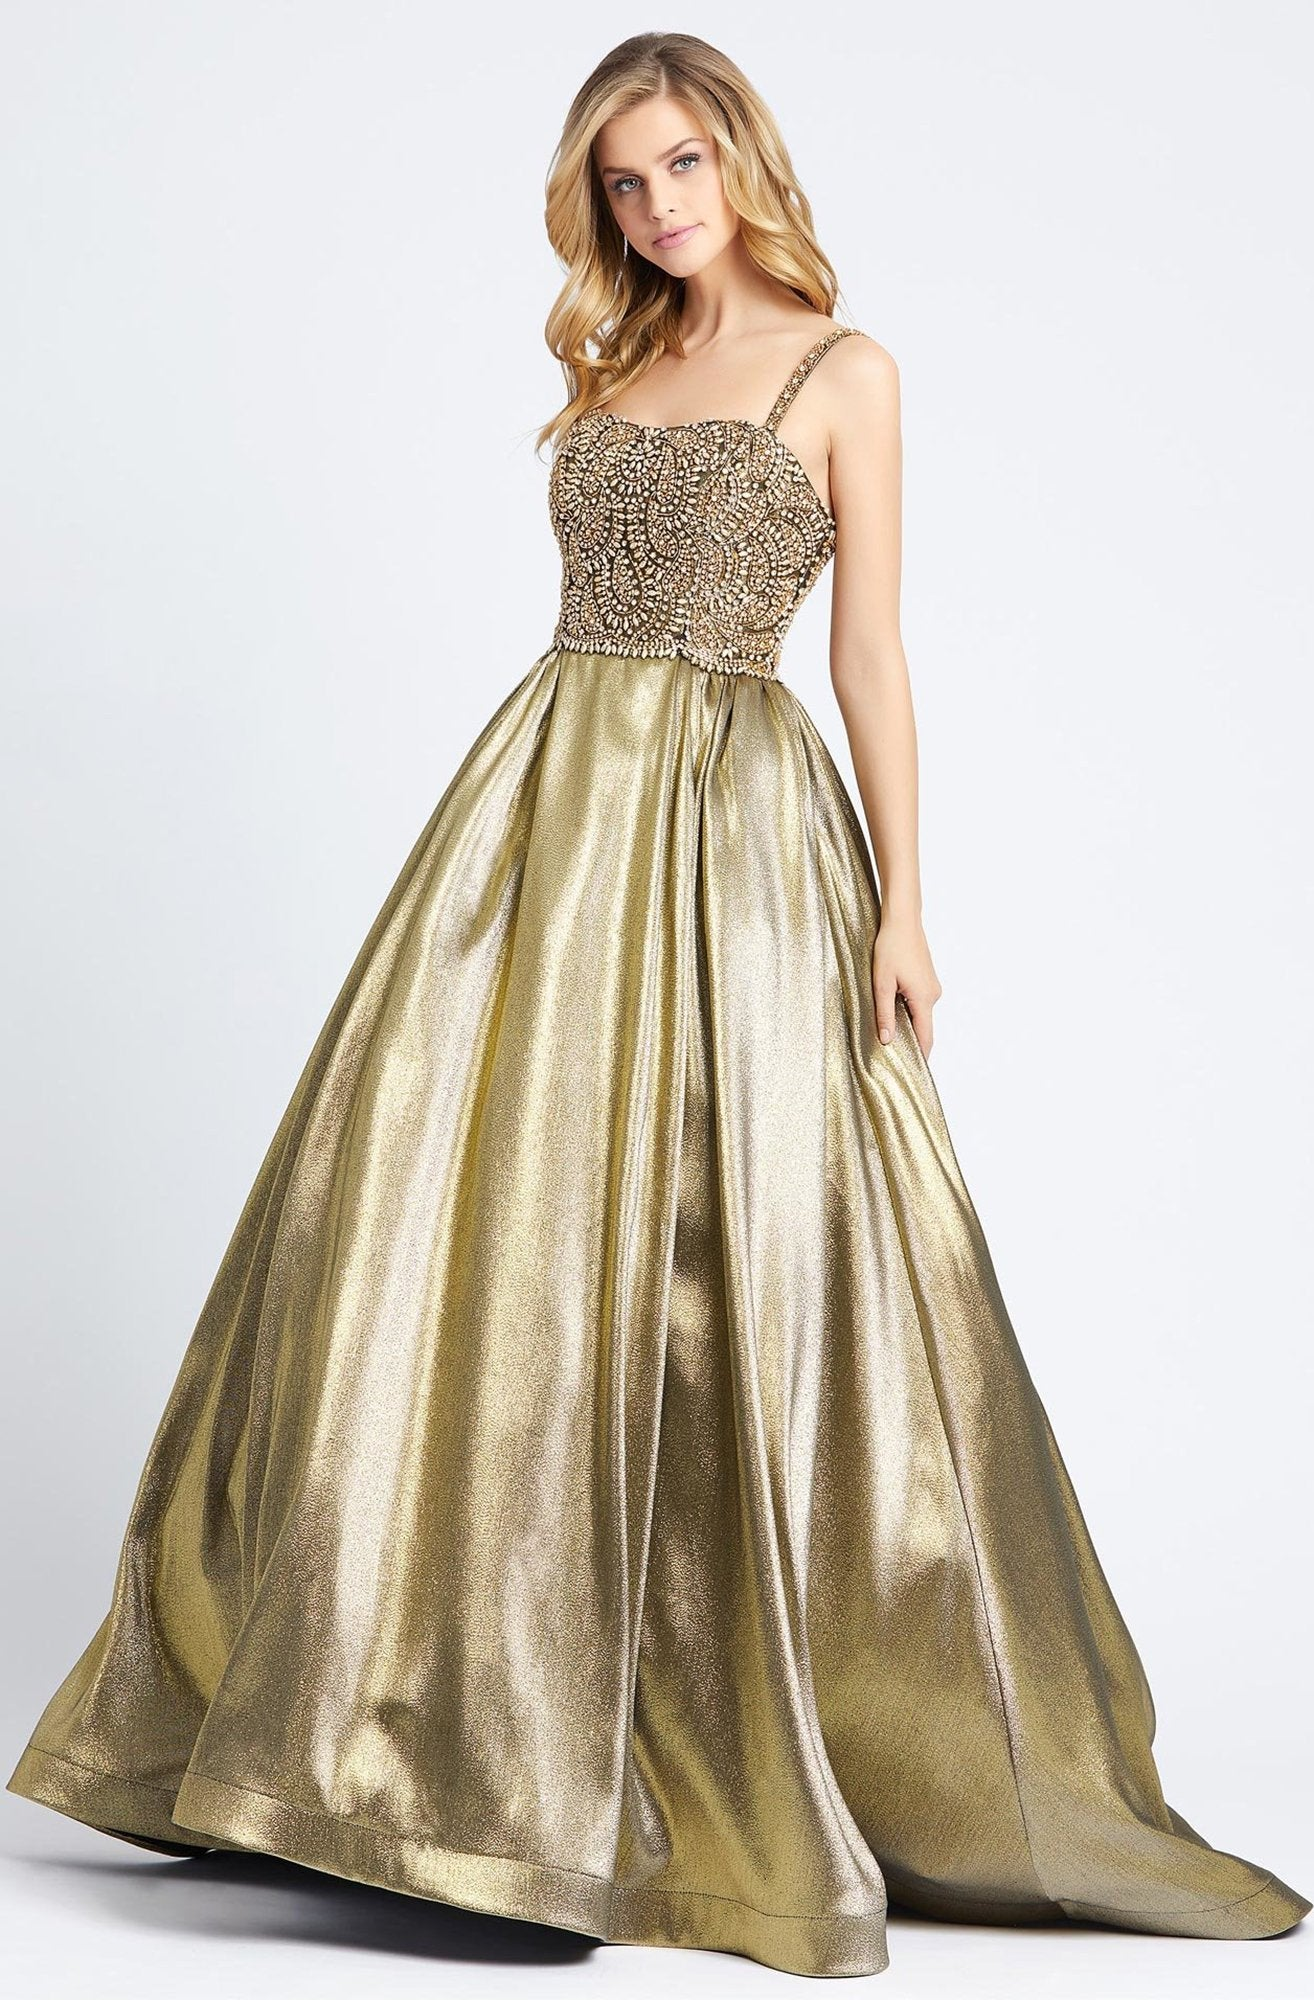 Mac Duggal Ballgowns - 66743H Paisley-Beaded Bodice Metallic Ballgown In Gold